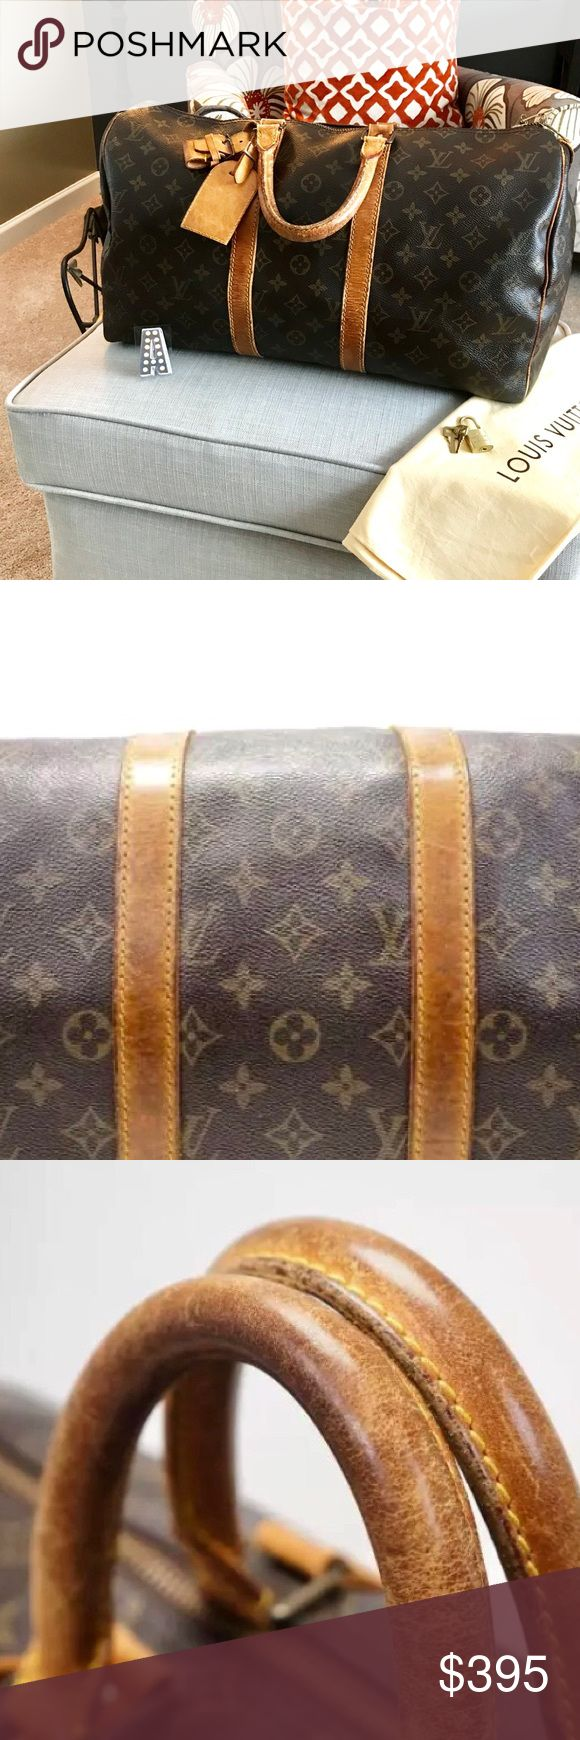 Louis Vuitton Keepall 45 Fair to good condition more details to follow. Aged peace with wear and marks on handles-and straps. Inside in really good condition and hardware polished and fair. Priced accordingly. Louis Vuitton Bags Travel Bags